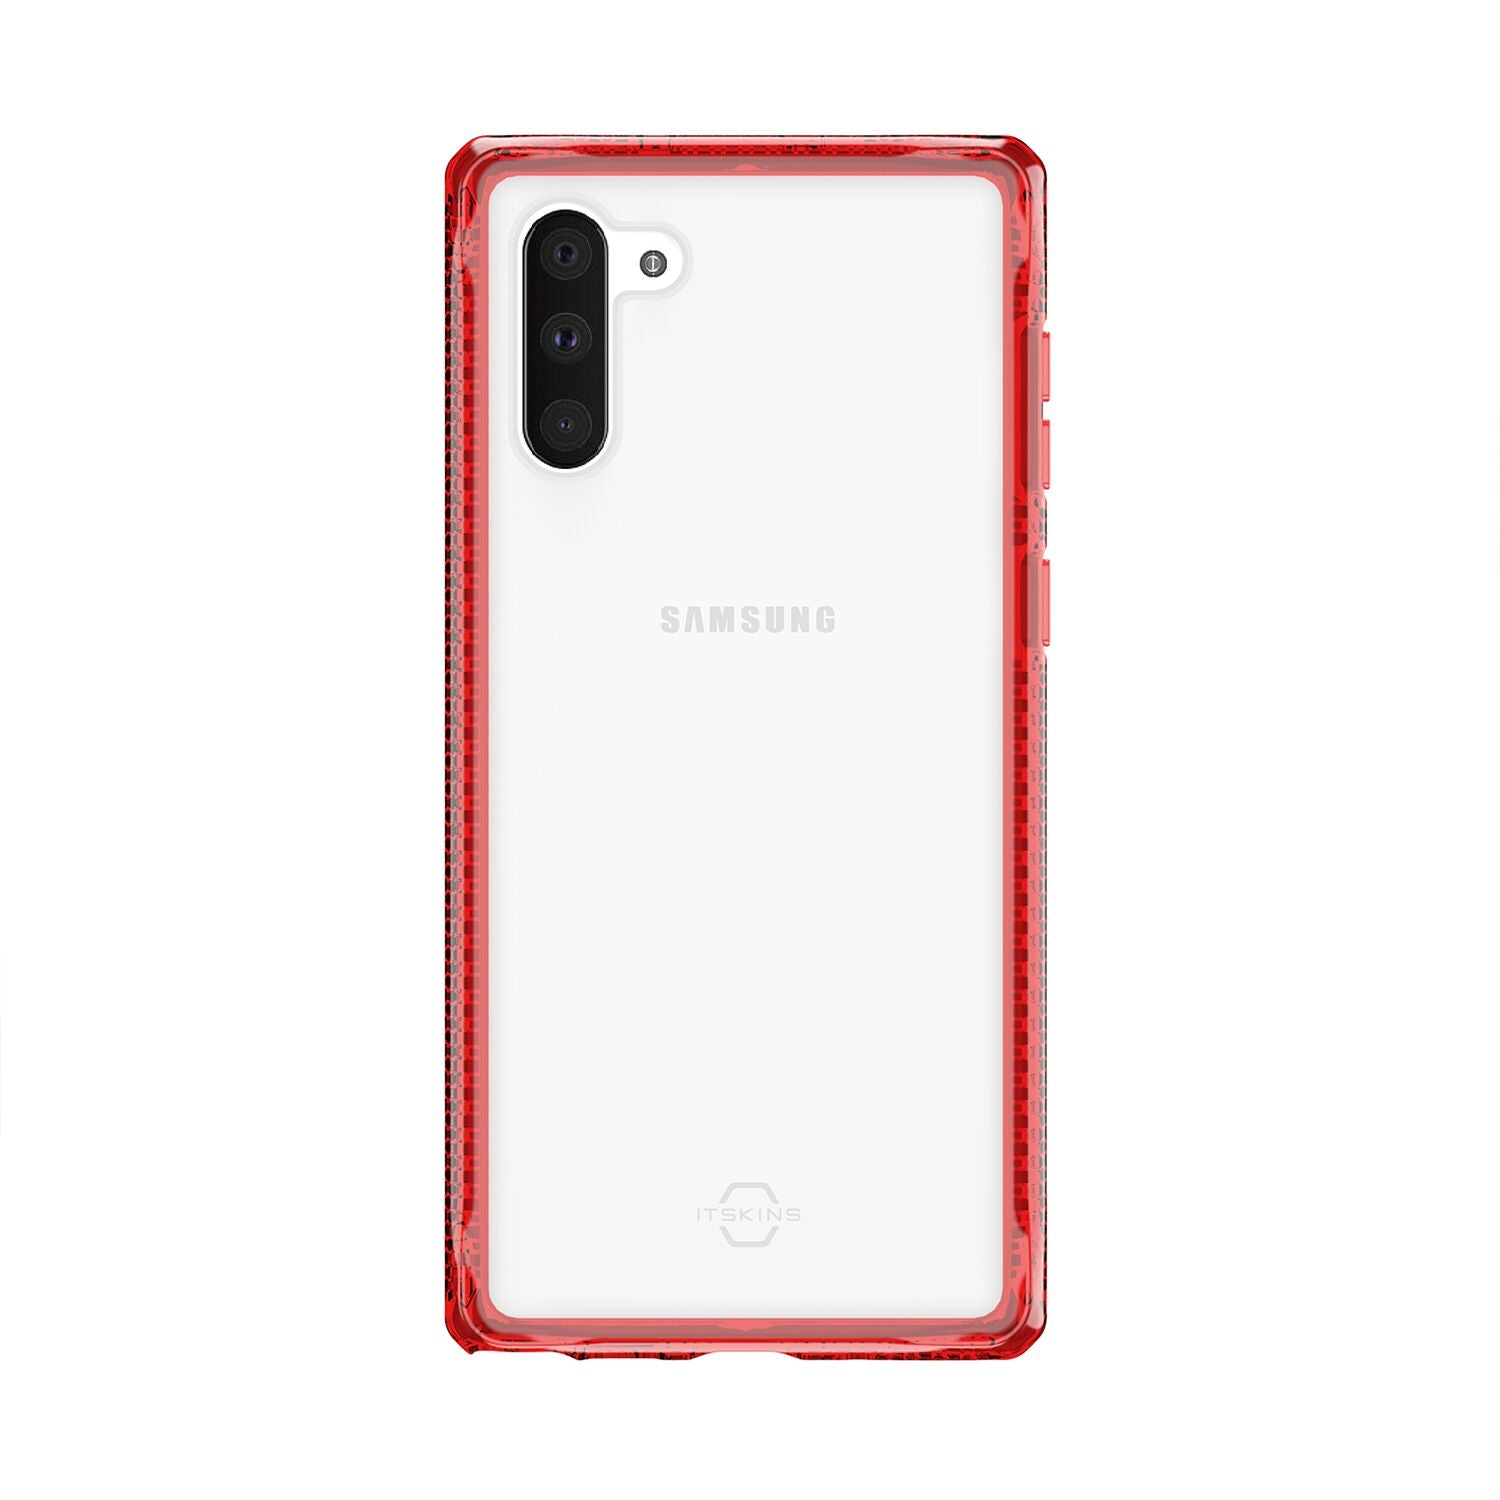 ITSKINS HYBRID CLEAR FOR SAMSUNG NOTE 10&NOTE 10+ RED & TRANSPARENT